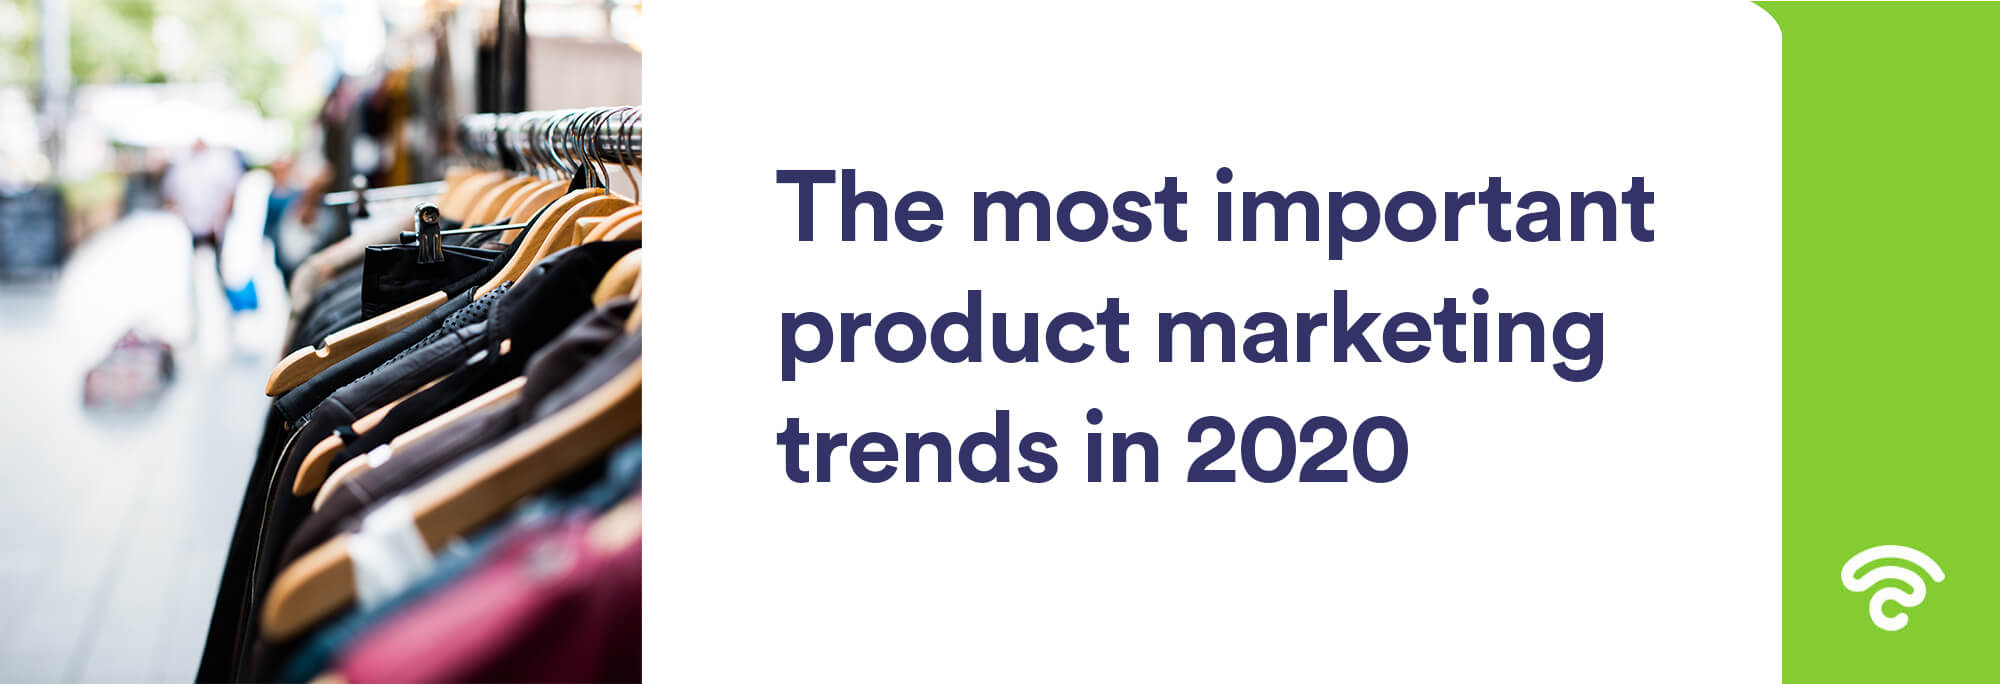 product marketing trends 2020